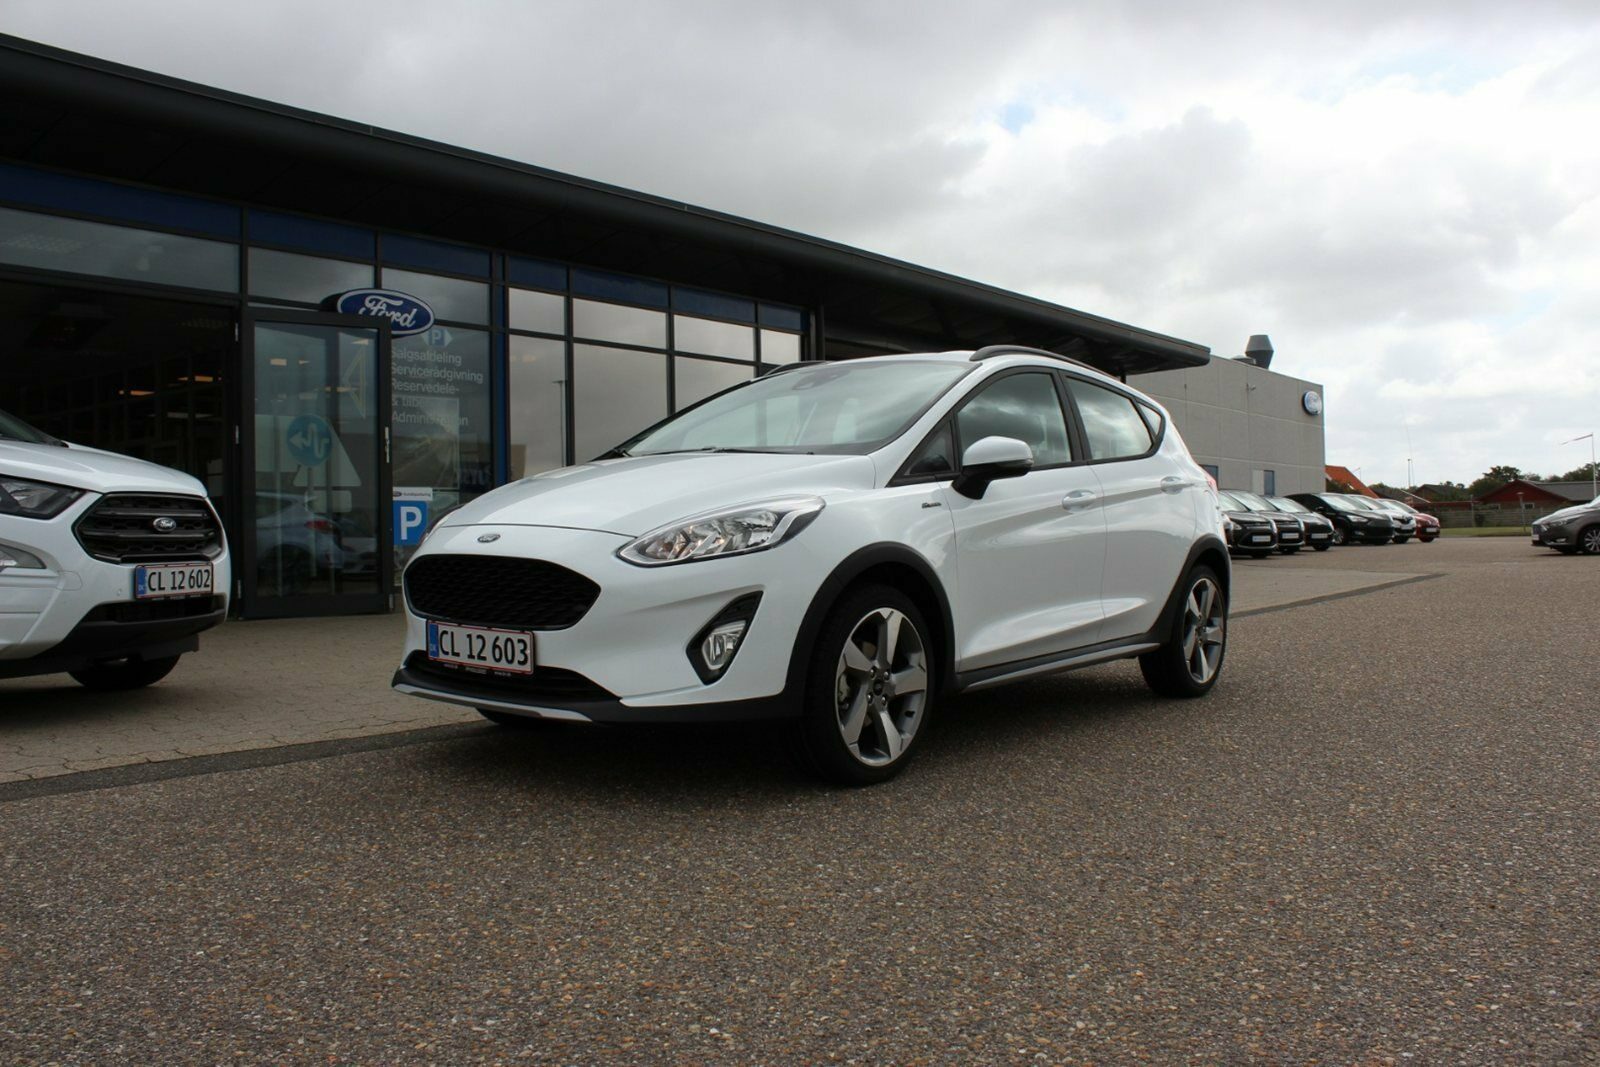 Ford Fiesta 1,0 SCTi 125 Active I